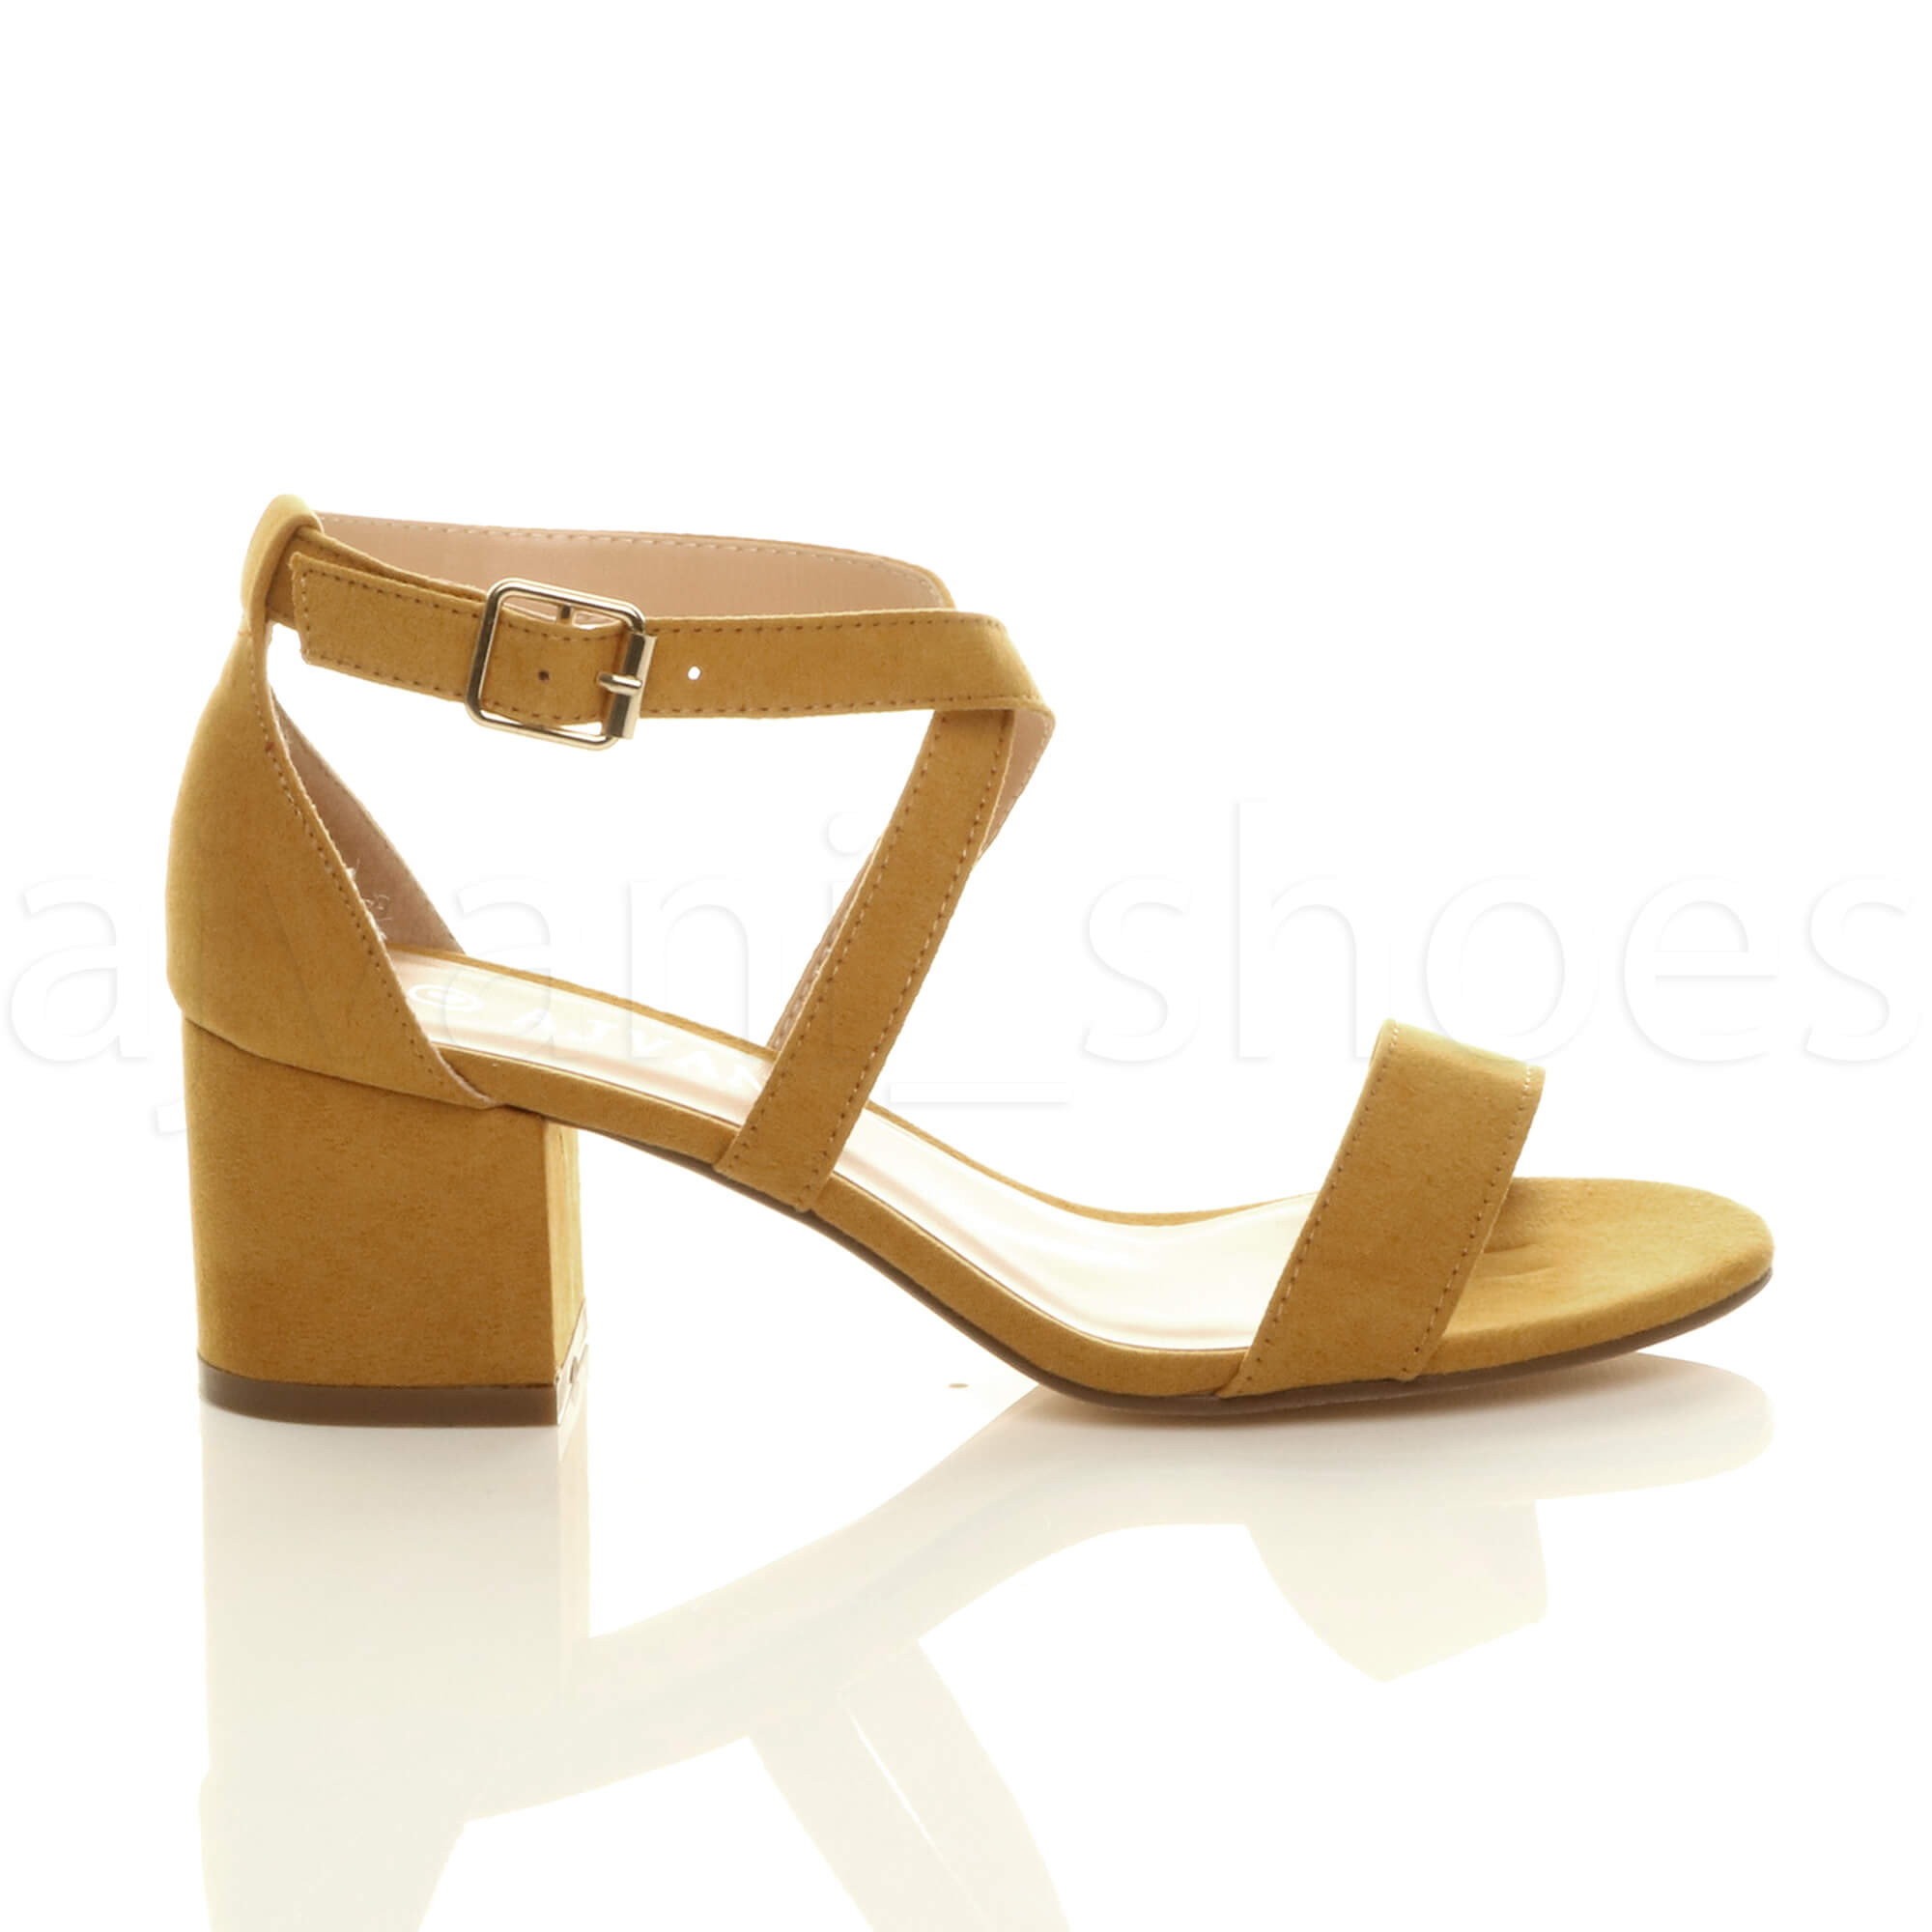 WOMENS-LADIES-MID-LOW-BLOCK-HEEL-CROSS-STRAPS-PARTY-STRAPPY-SANDALS-SHOES-SIZE thumbnail 42